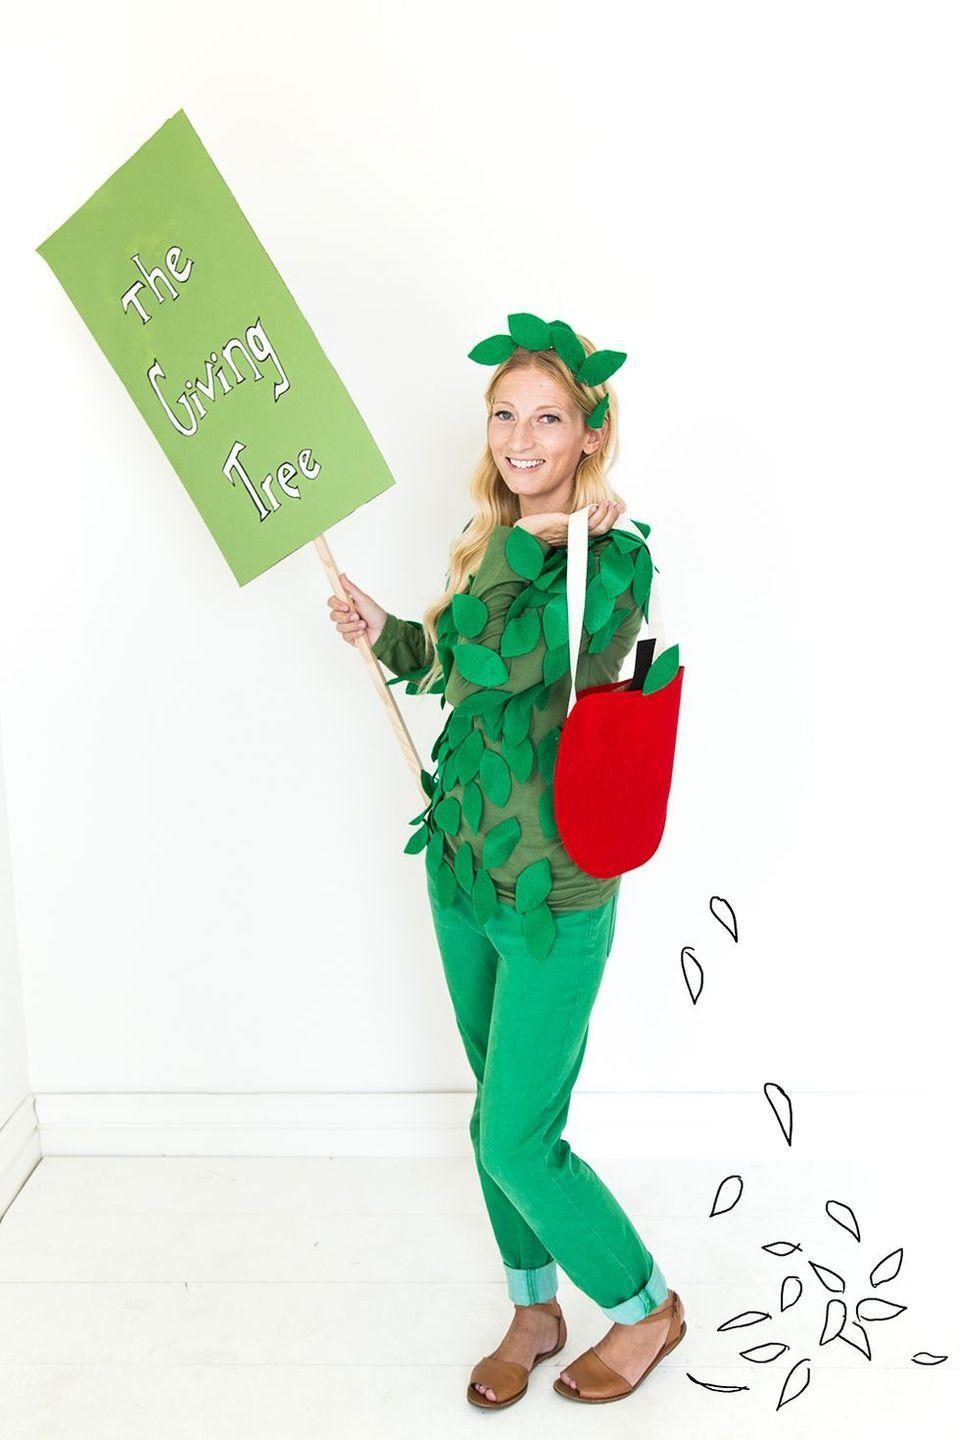 """<p>Shel Silverstein's classic book comes to life in this all-green get-up. And what better place to stow your candy than in that no-sew felt apple bag?</p><p><strong>Get the tutorial at <a href=""""http://thehousethatlarsbuilt.com/2015/10/the-giving-tree-parent-and-child-costumes.html/"""" rel=""""nofollow noopener"""" target=""""_blank"""" data-ylk=""""slk:The House That Lars Built"""" class=""""link rapid-noclick-resp"""">The House That Lars Built</a>.</strong></p><p><a class=""""link rapid-noclick-resp"""" href=""""https://go.redirectingat.com?id=74968X1596630&url=https%3A%2F%2Fwww.walmart.com%2Fsearch%2F%3Fquery%3Dred%2Bfelt&sref=https%3A%2F%2Fwww.thepioneerwoman.com%2Fholidays-celebrations%2Fg37014285%2Fbook-character-costumes%2F"""" rel=""""nofollow noopener"""" target=""""_blank"""" data-ylk=""""slk:SHOP RED FELT"""">SHOP RED FELT</a><br></p>"""